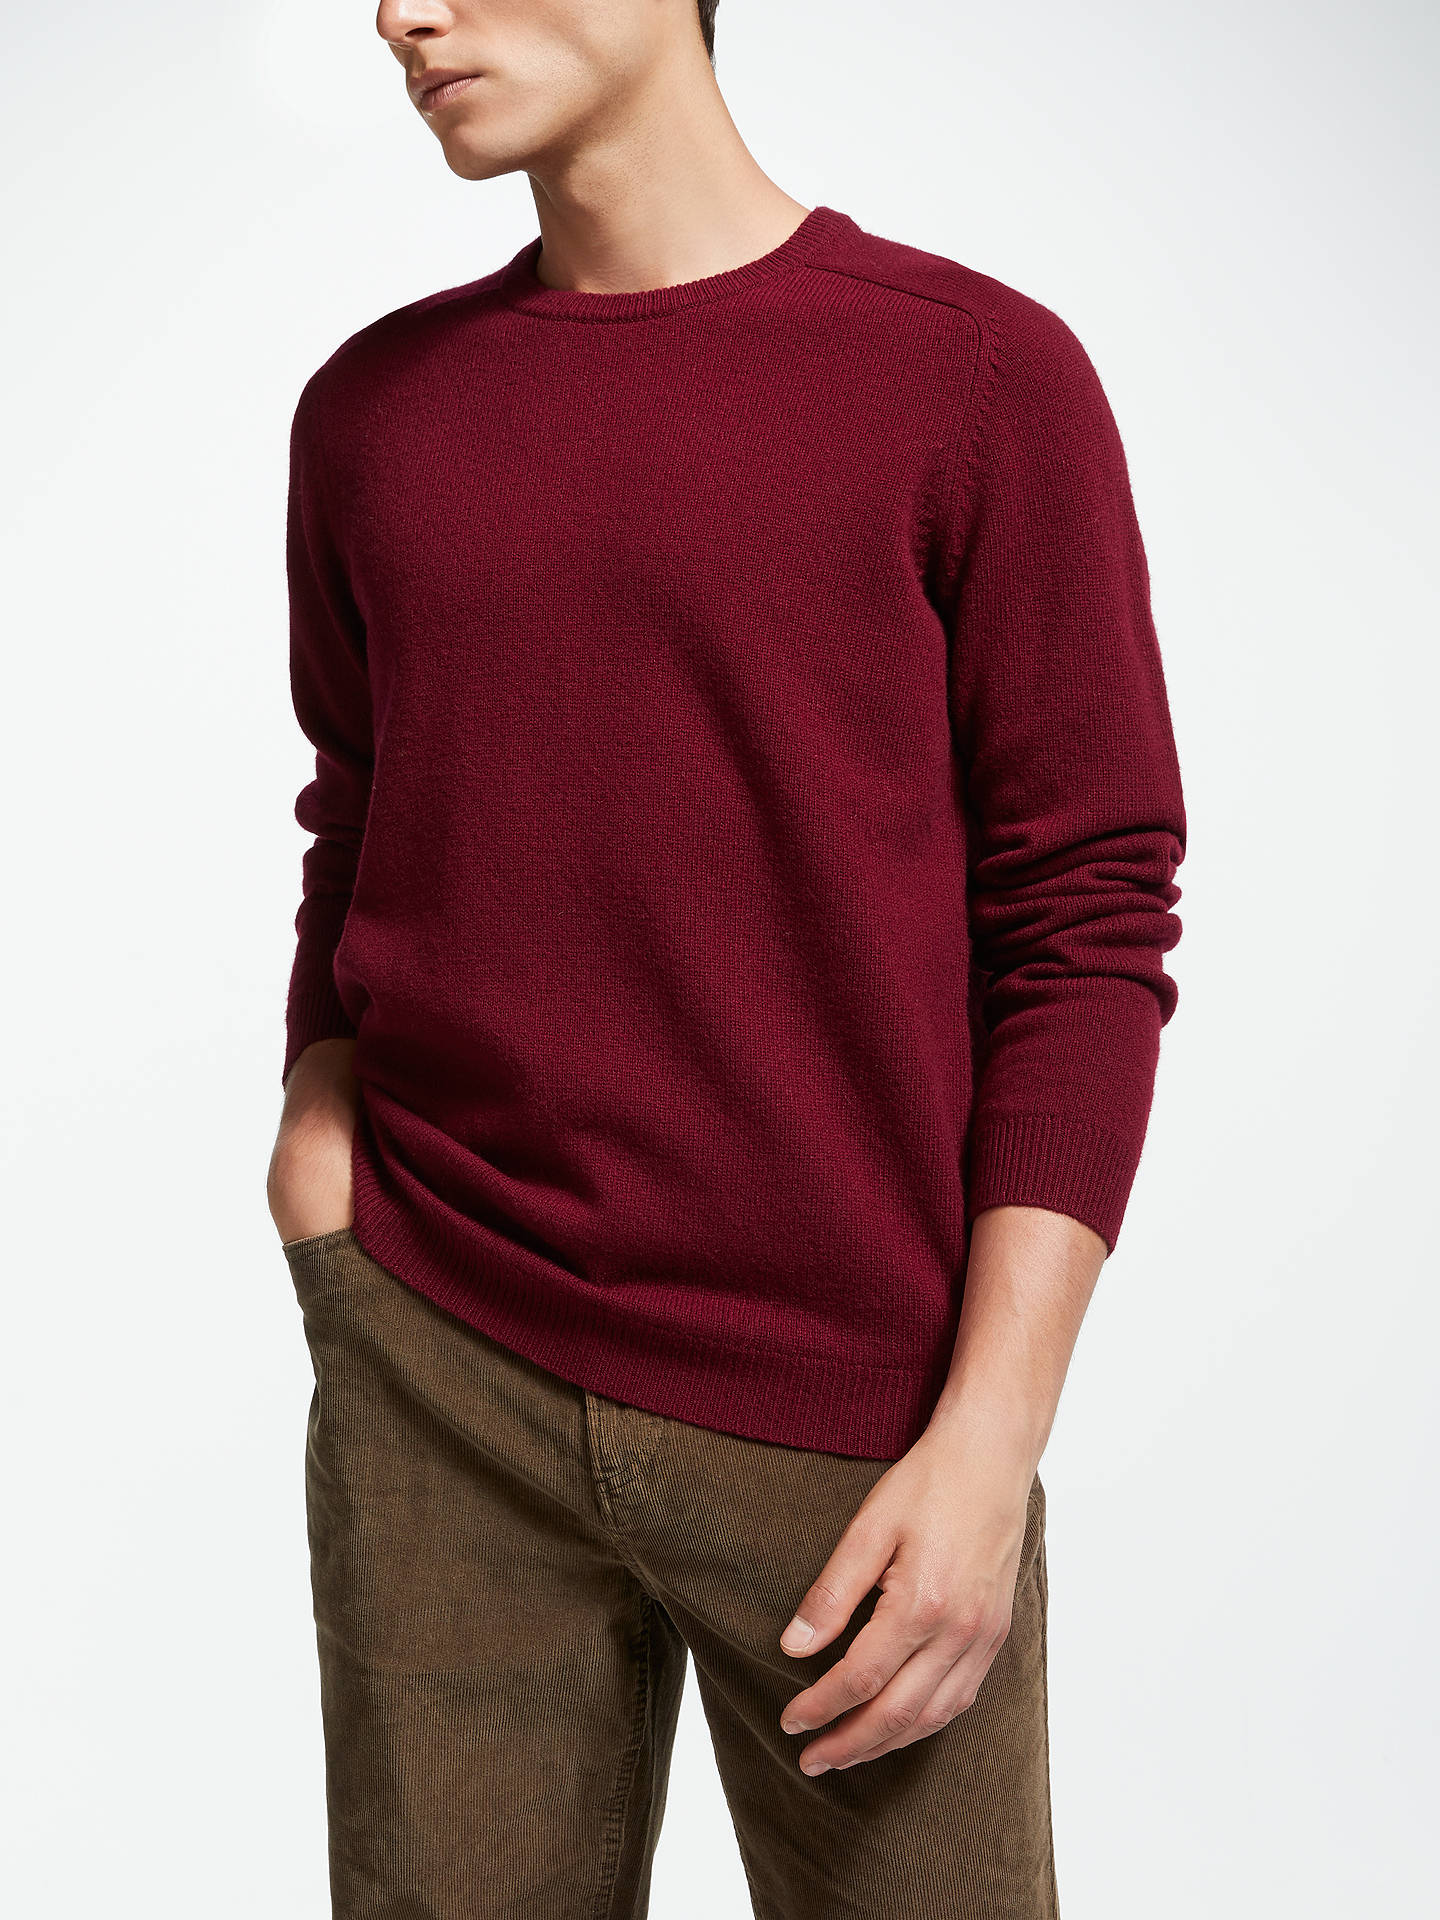 10946ae8a2 John Lewis & Partners Lambswool Crew Neck Knit Jumper, Red. View product  description